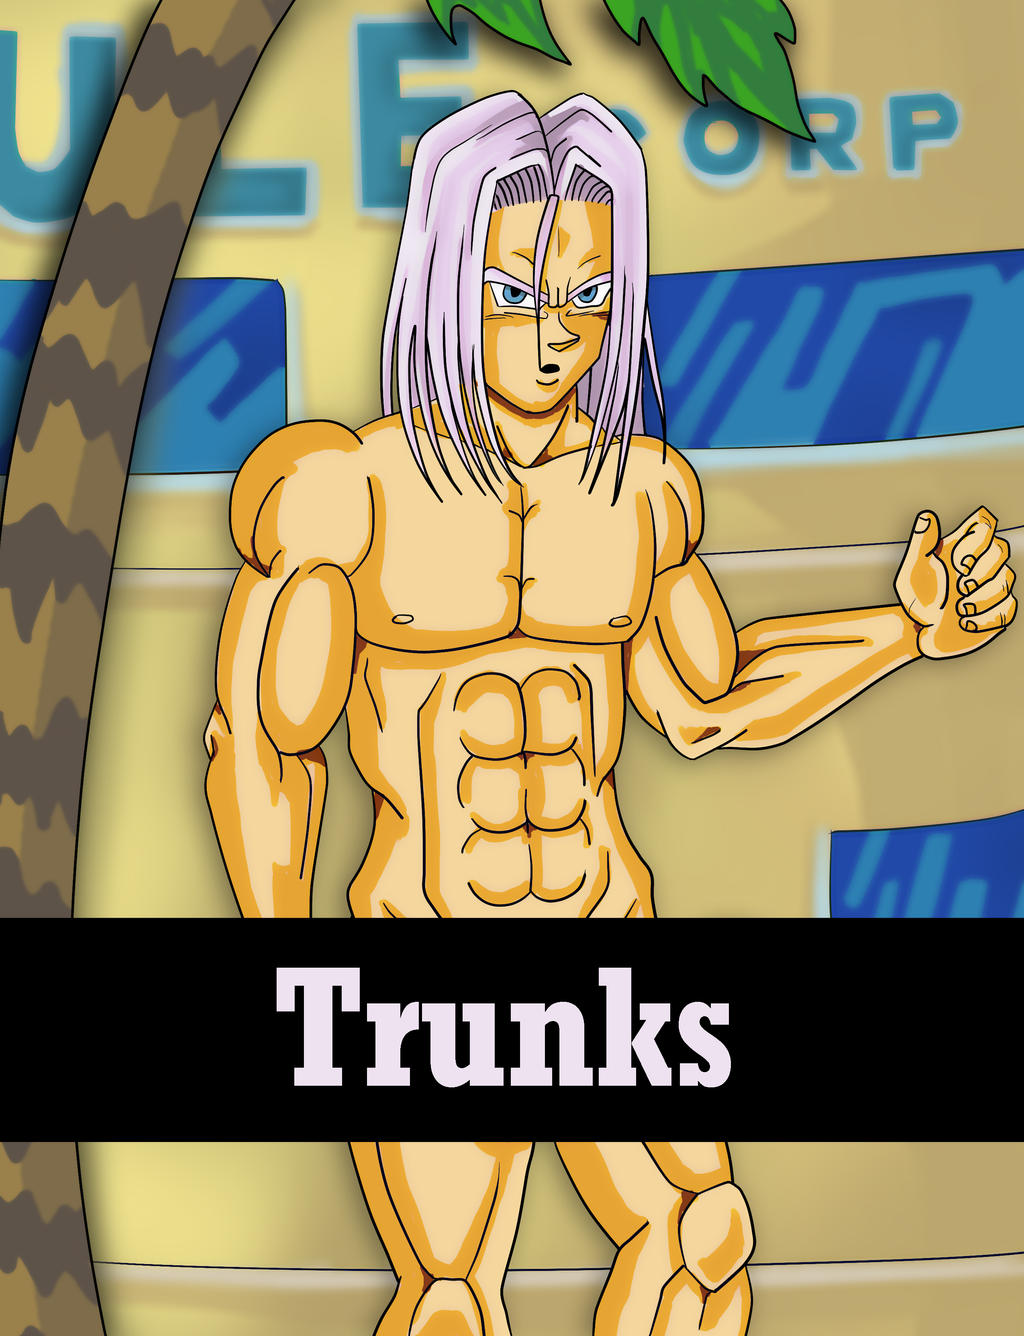 Refuse. Thanks Future trunks nude happens. can